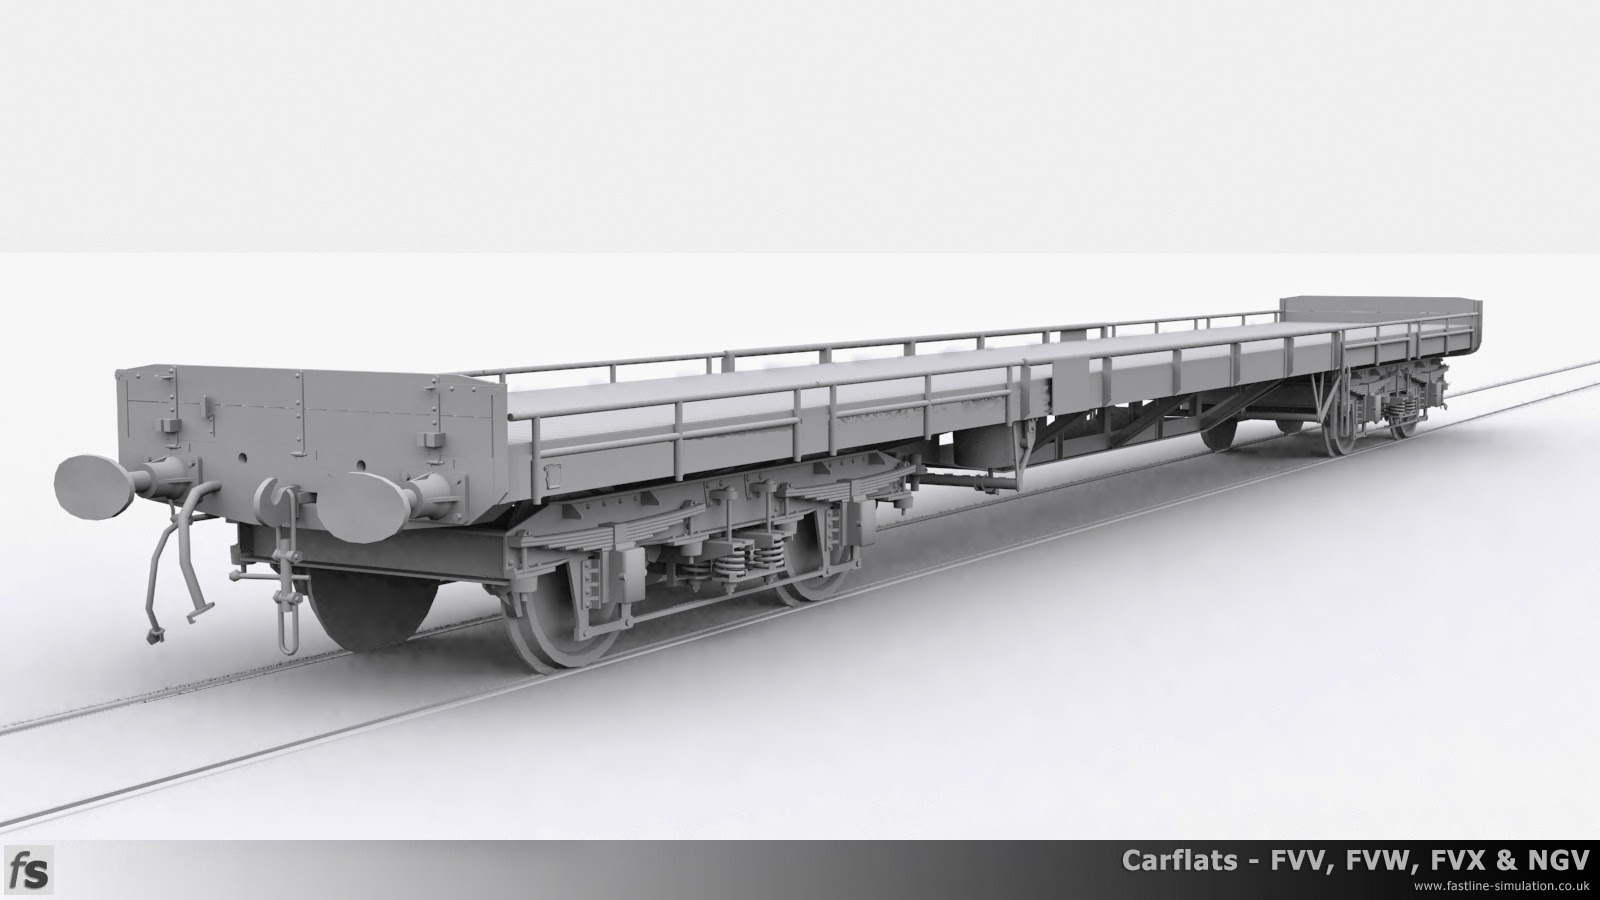 Fastline Simulation - Carflats: This render represents a dia. 1/177 wagon with wooden ends, vacuum brakes and through air pipe. The sides are the lower configuration of split sides with the details board virtually in the middle.